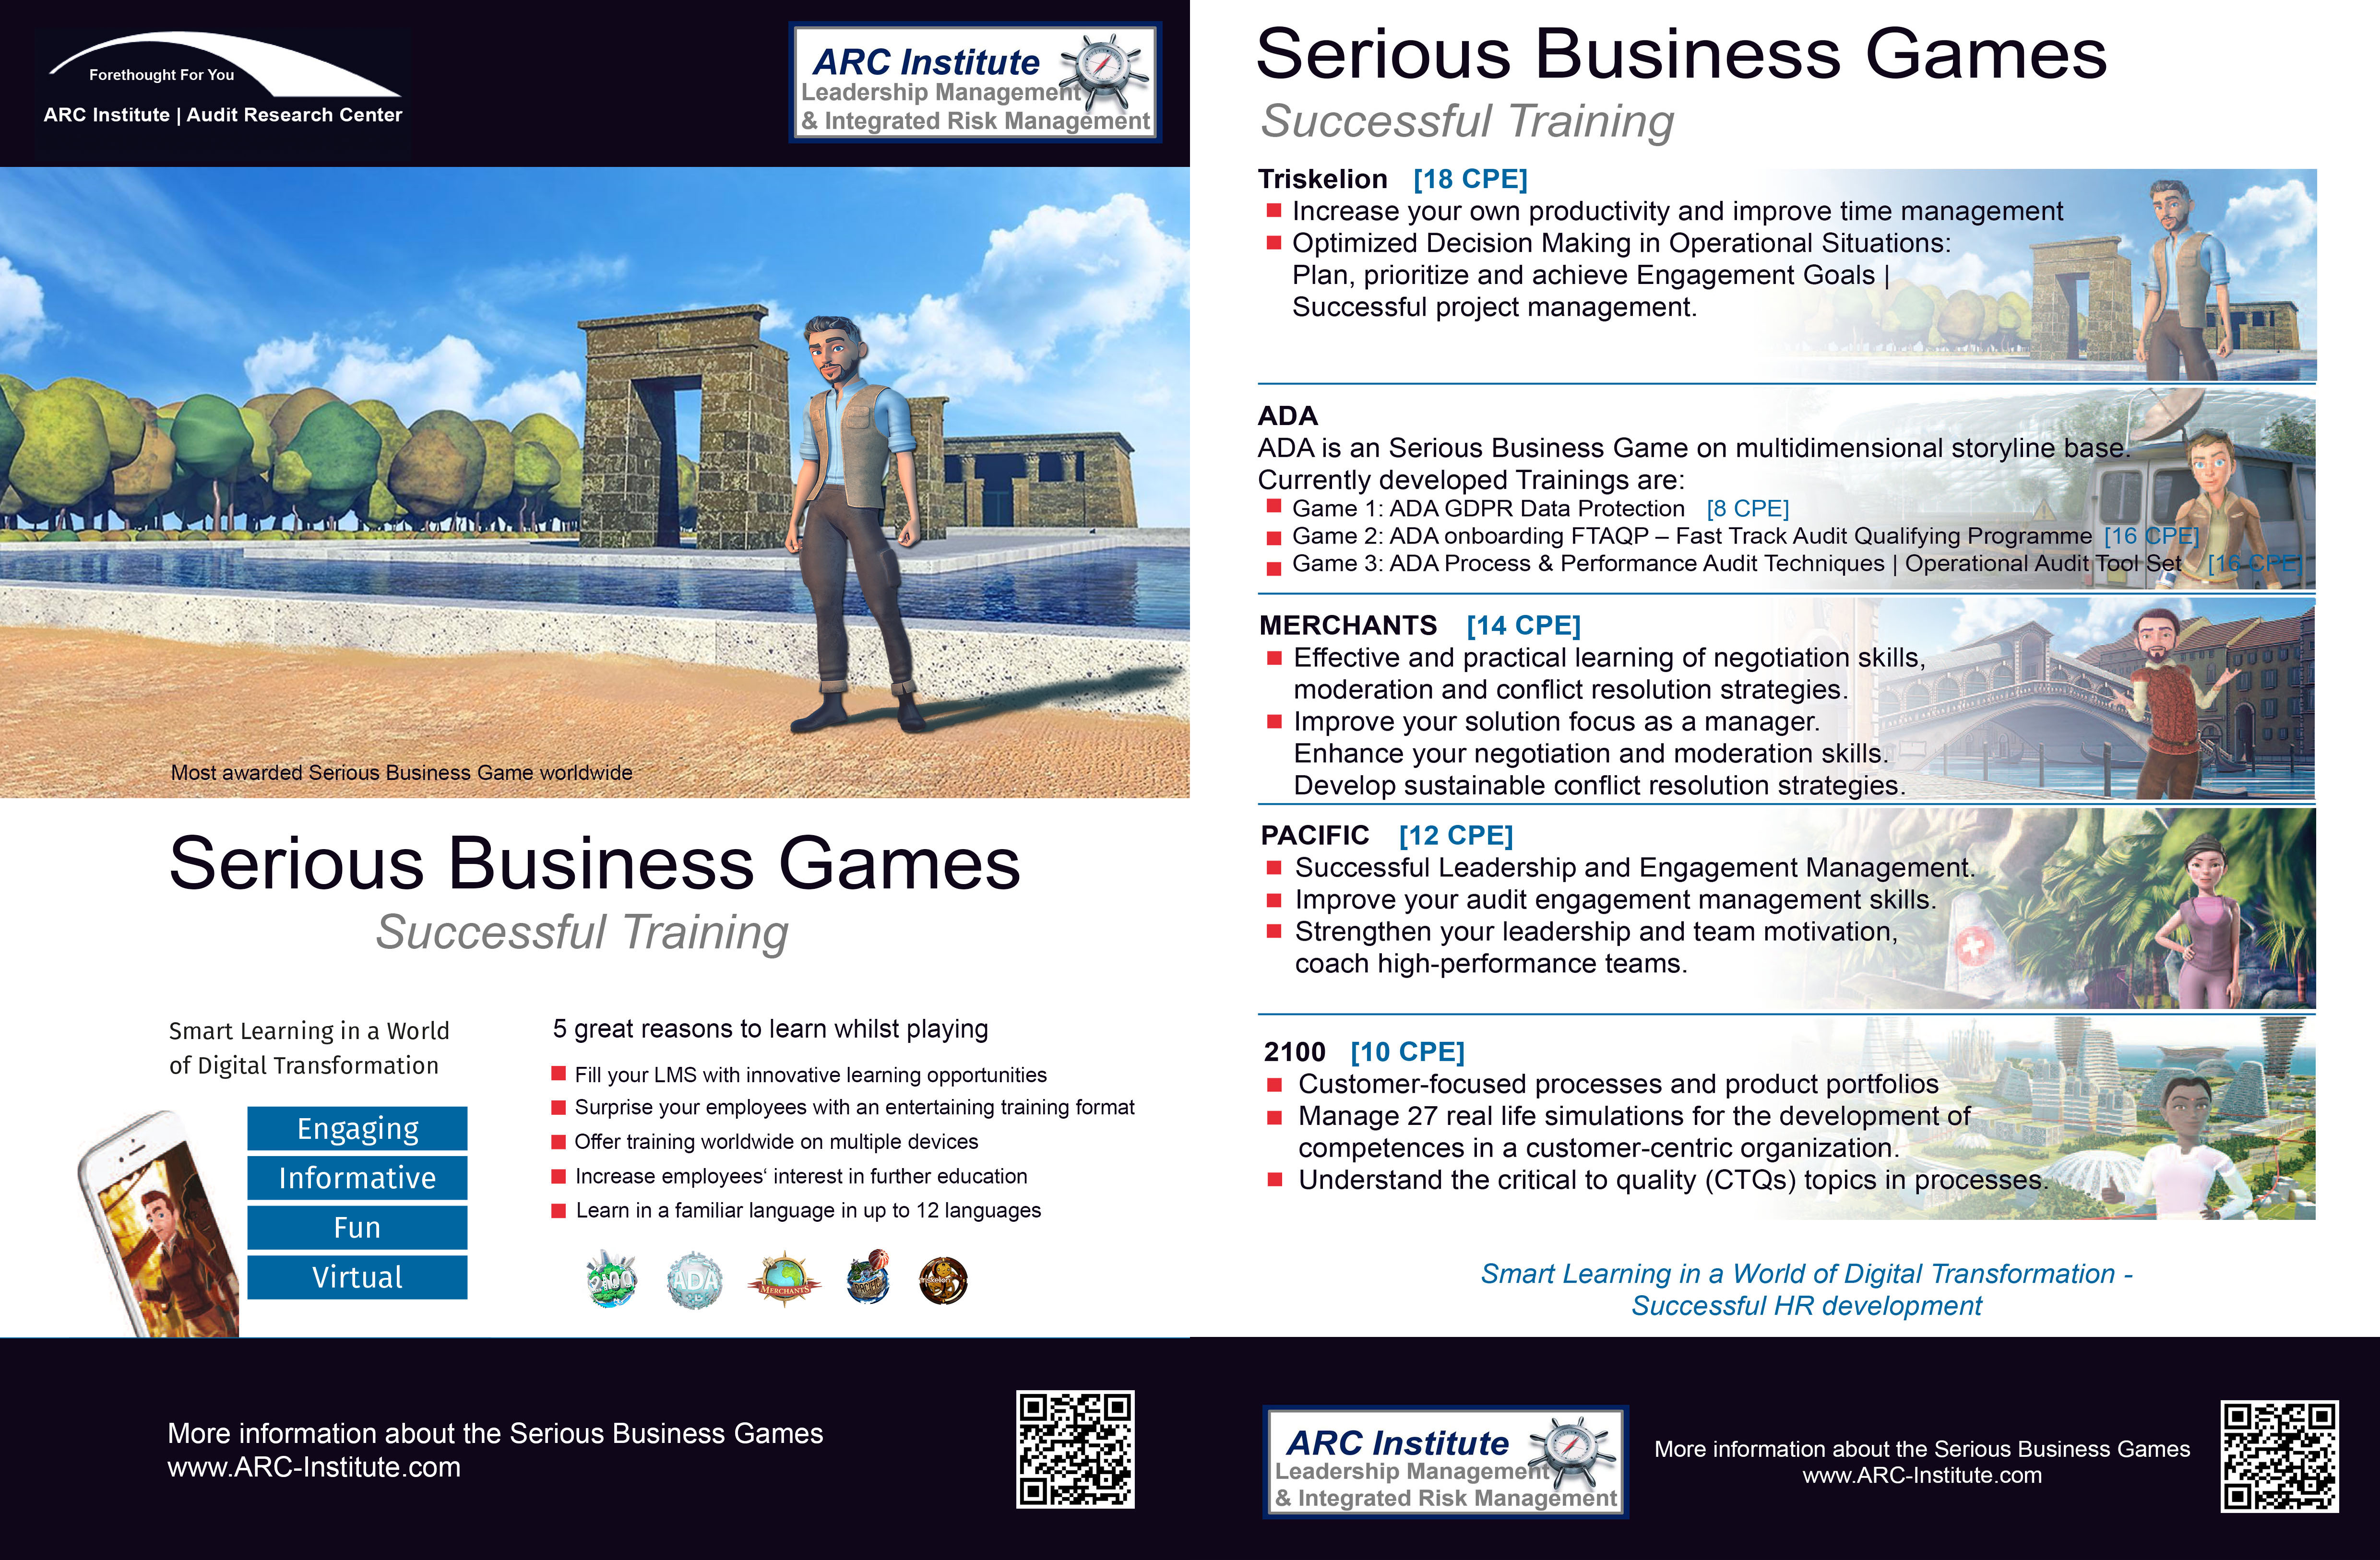 Serious Business Games ARC-Institute Audit Research Center